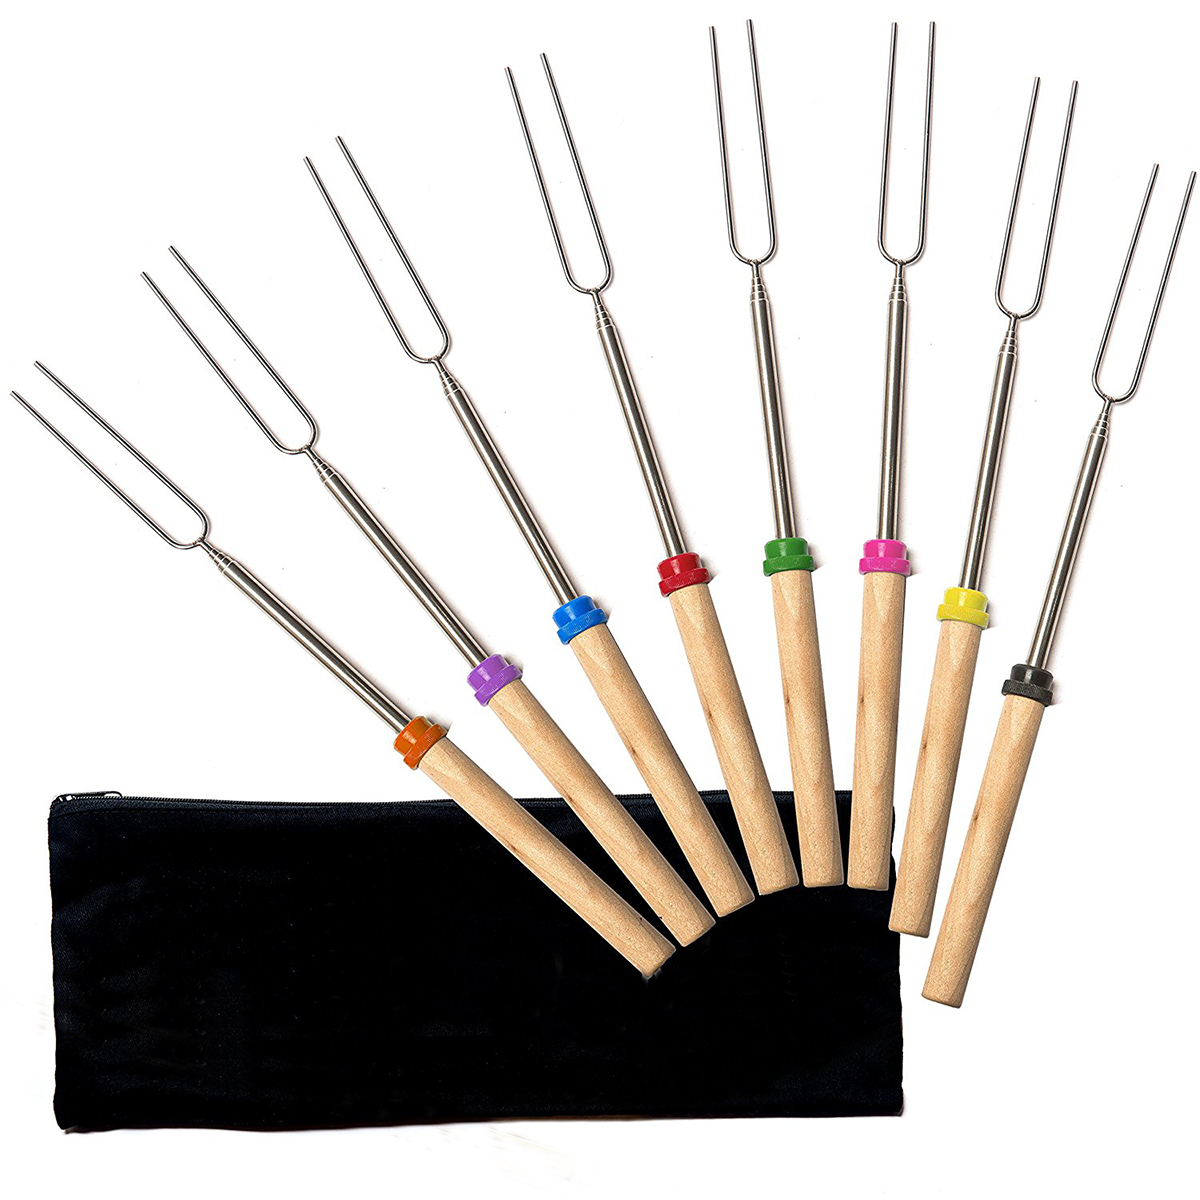 "8Pcs Marshmallow Roasting Sticks, Scalable 11.8""-32"" Stainless Steel Barbecue Forks, Smore Skewers&Hot Dog Sticks, Perfect for Campfire, Fire Pit, Camping and BBQ, Safe Cookware Kit(8 Colors)"